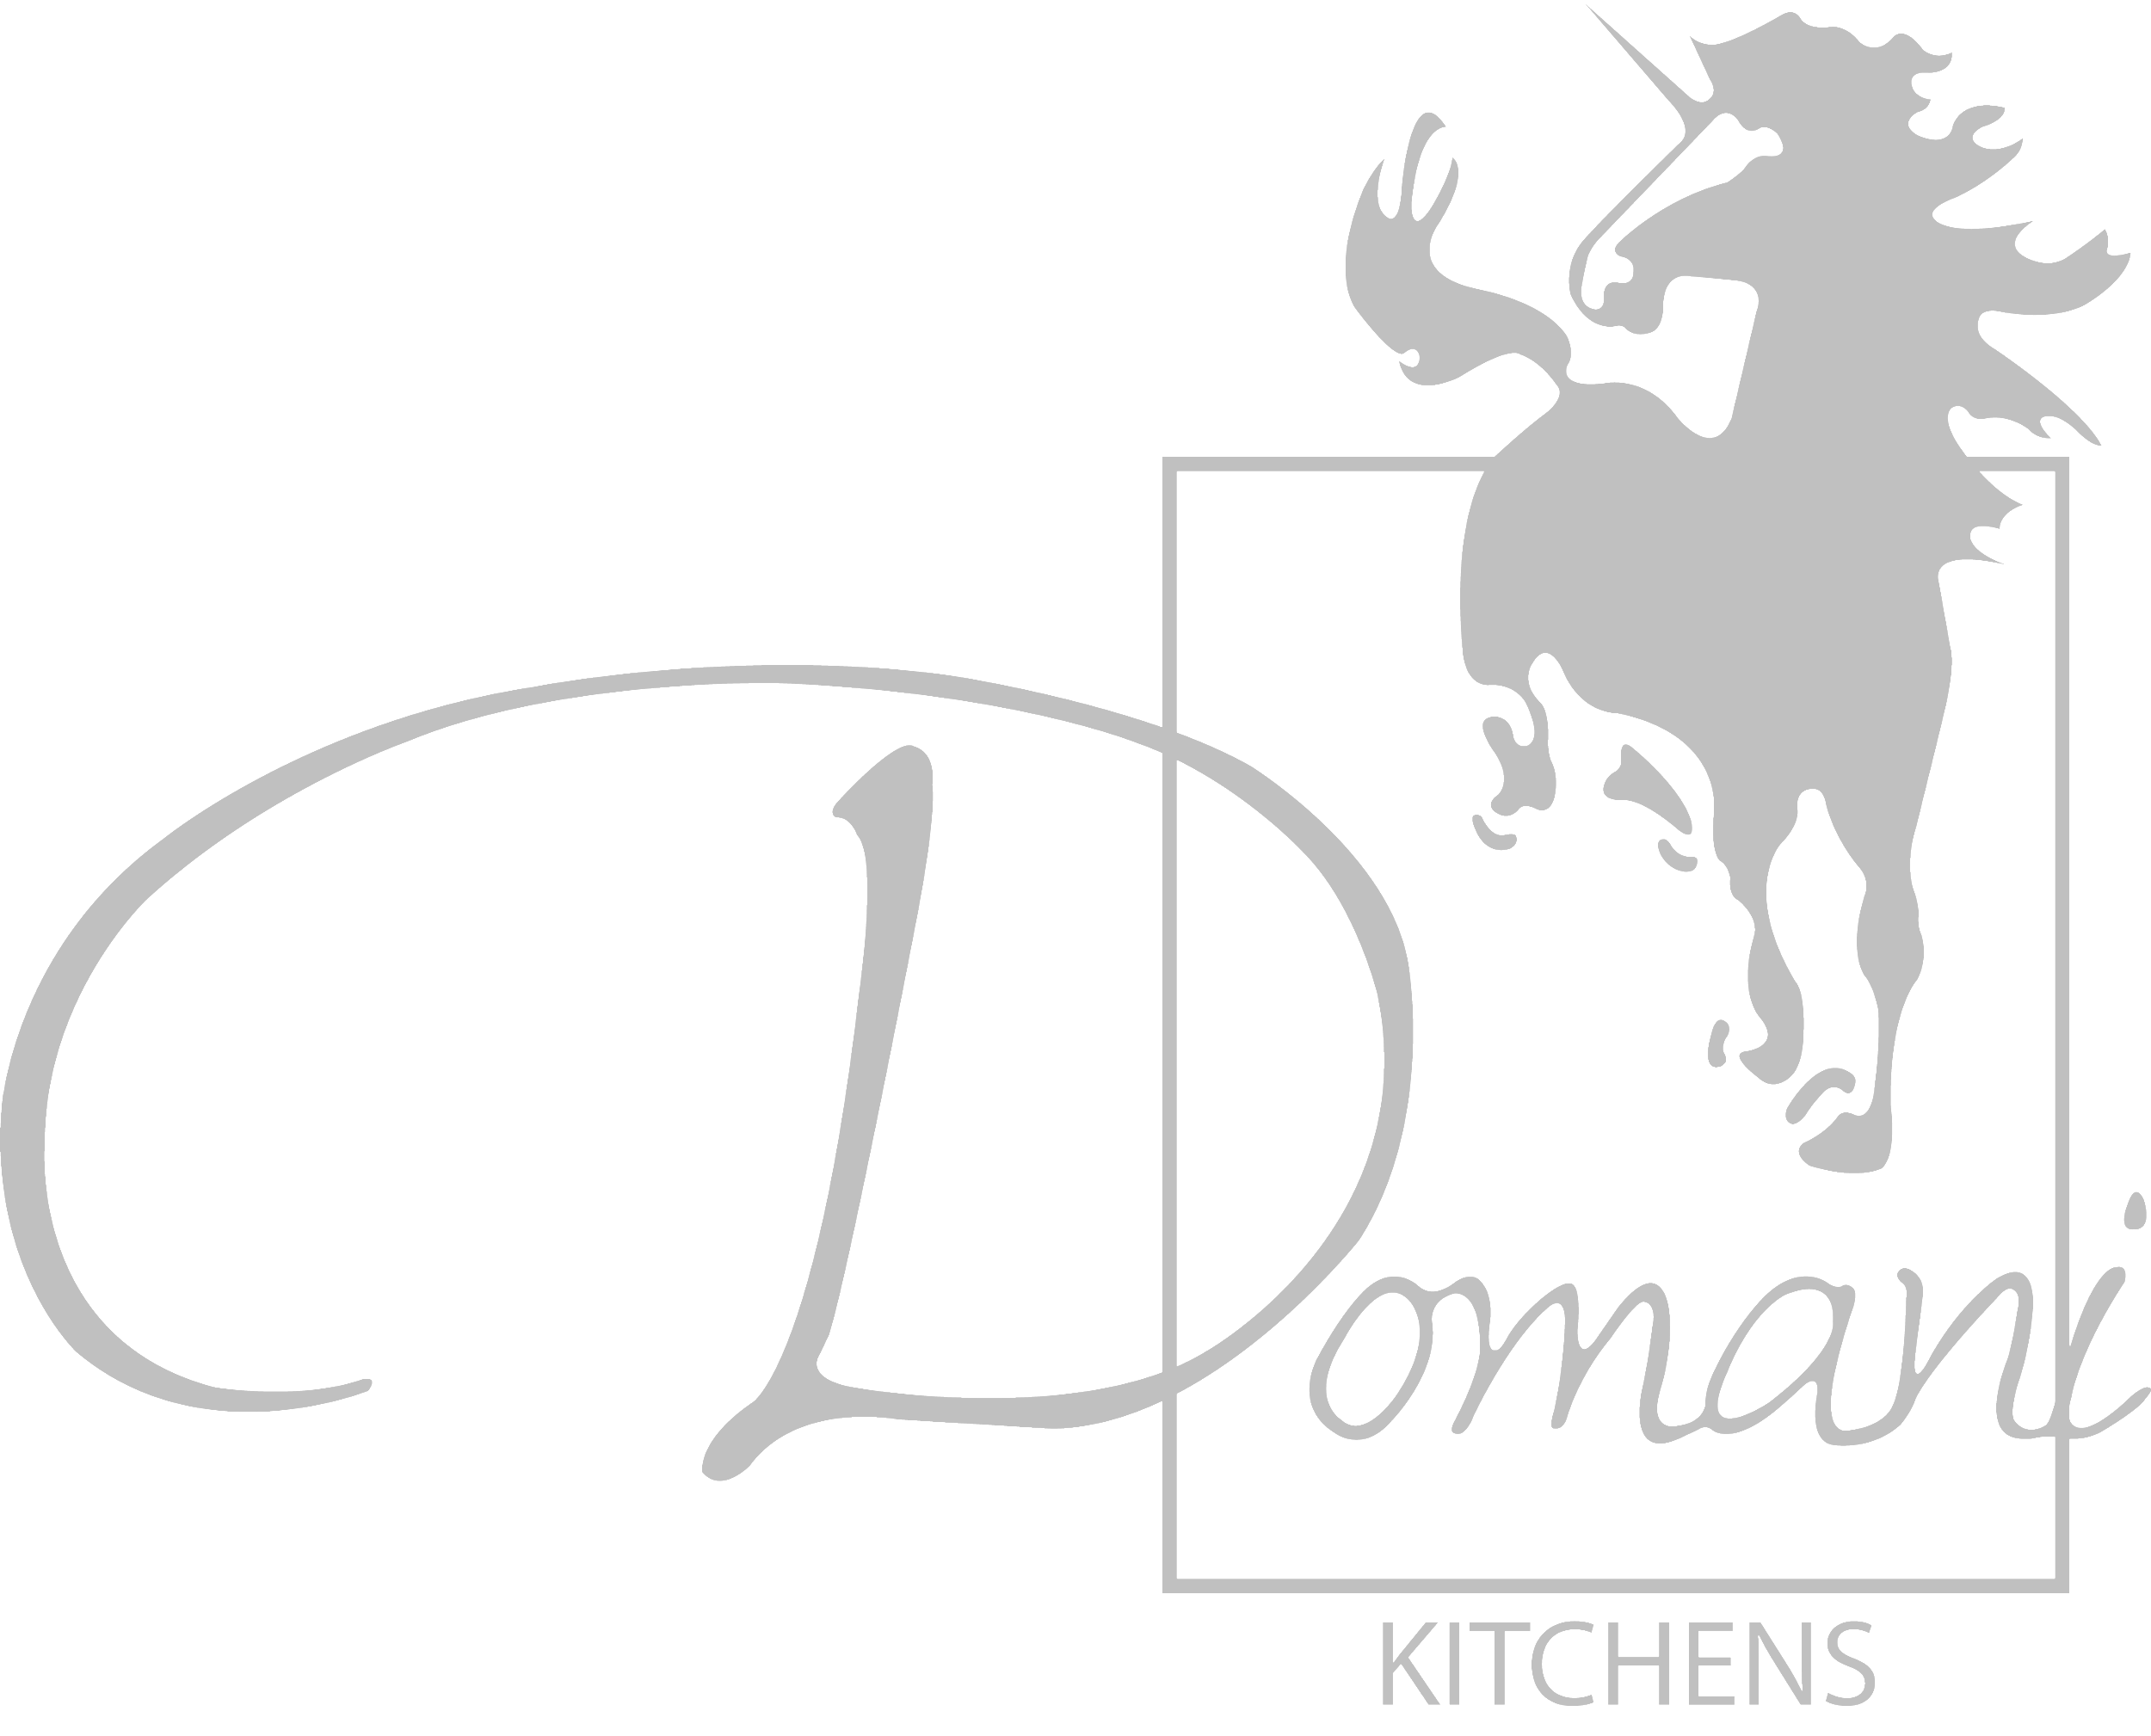 DDG LOGO HD KITCHEN.png